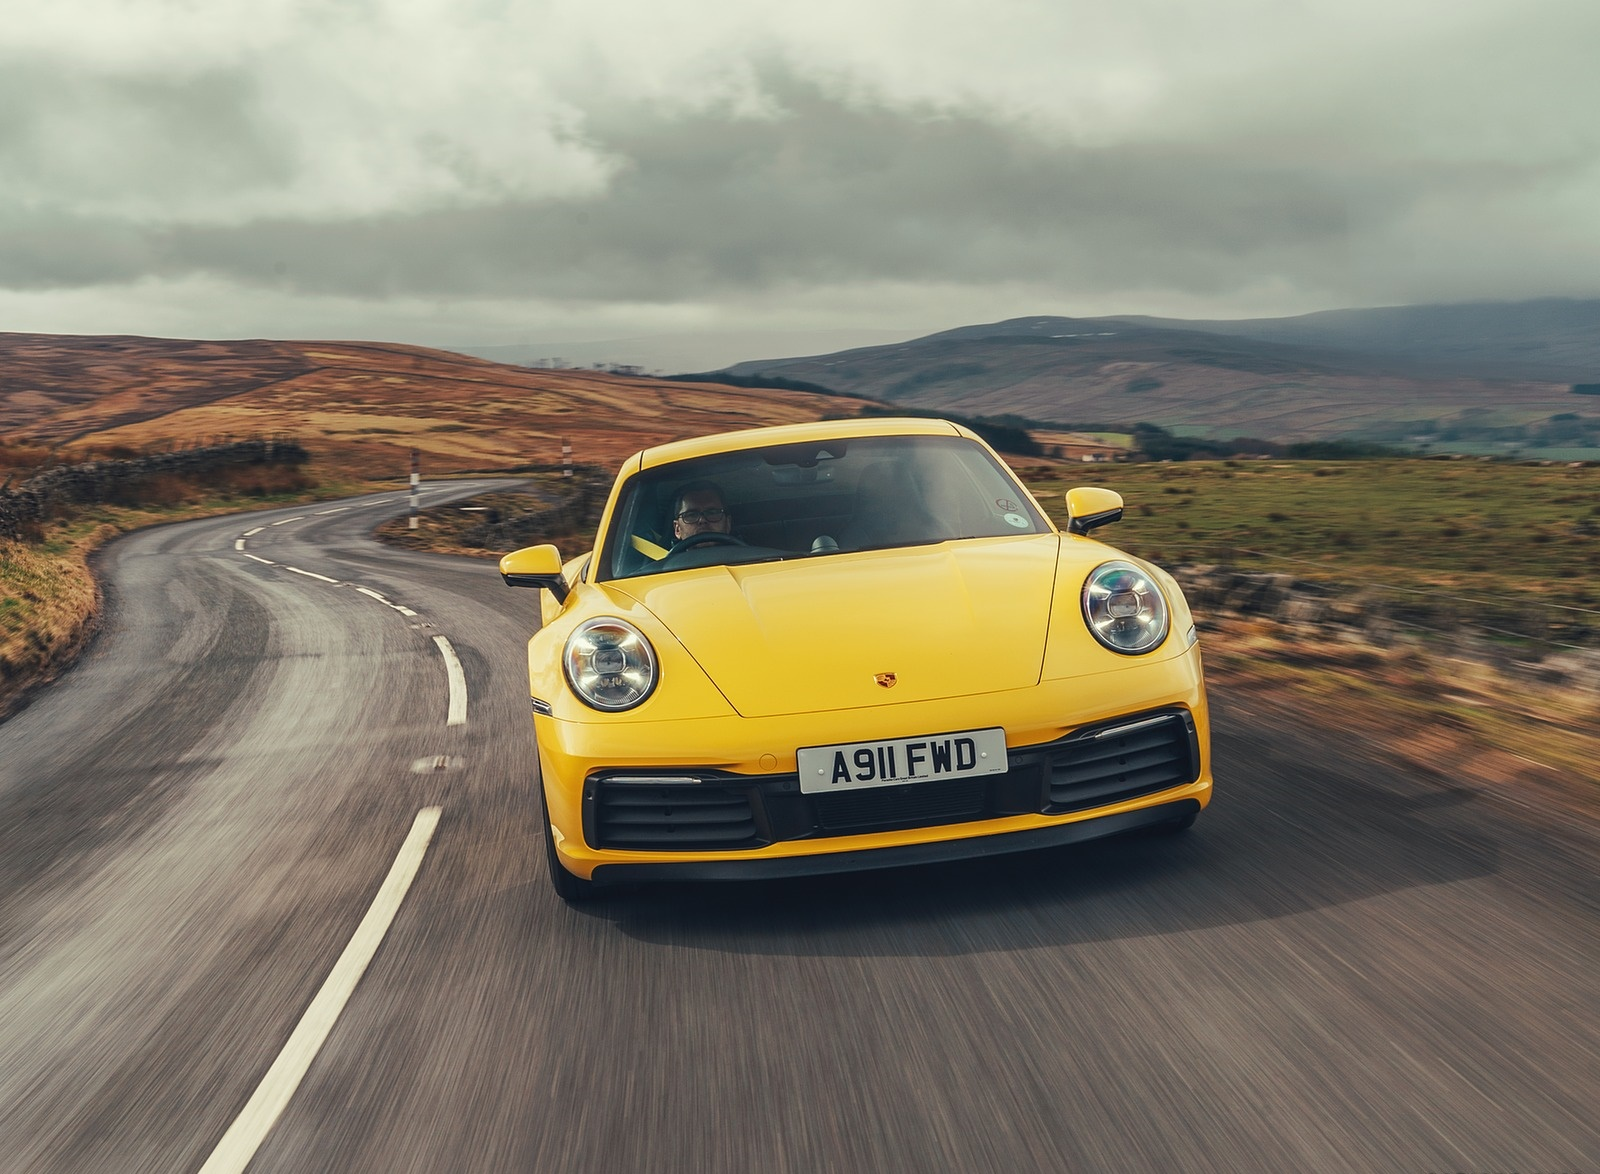 2019 Porsche 911 (992) Carrera 4S (UK-Spec) Front Wallpaper (8)